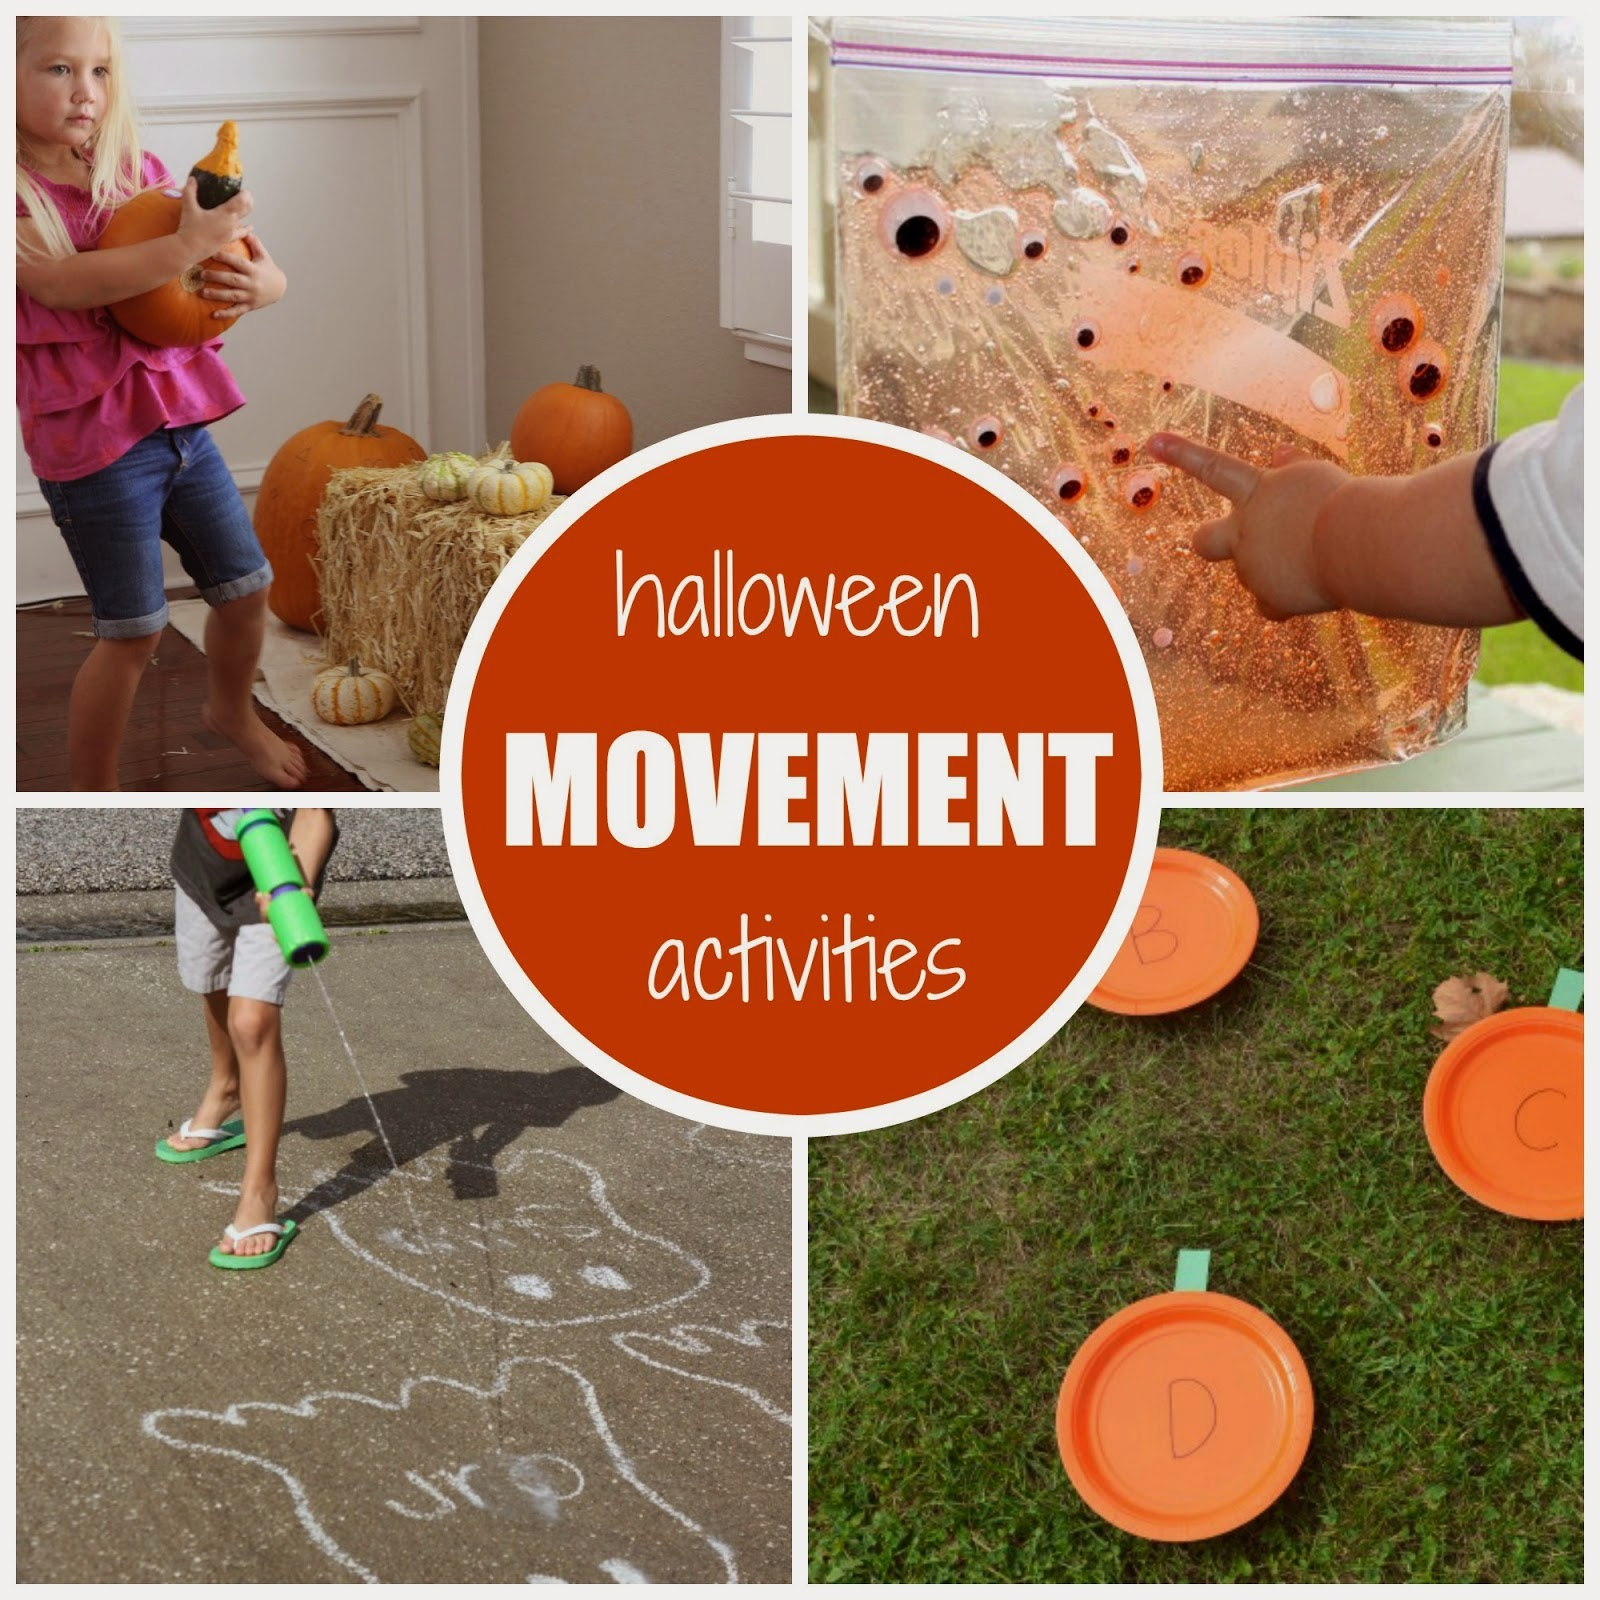 http://www.toddlerapproved.com/2014/10/halloween-themed-movement-activities.html?m=1